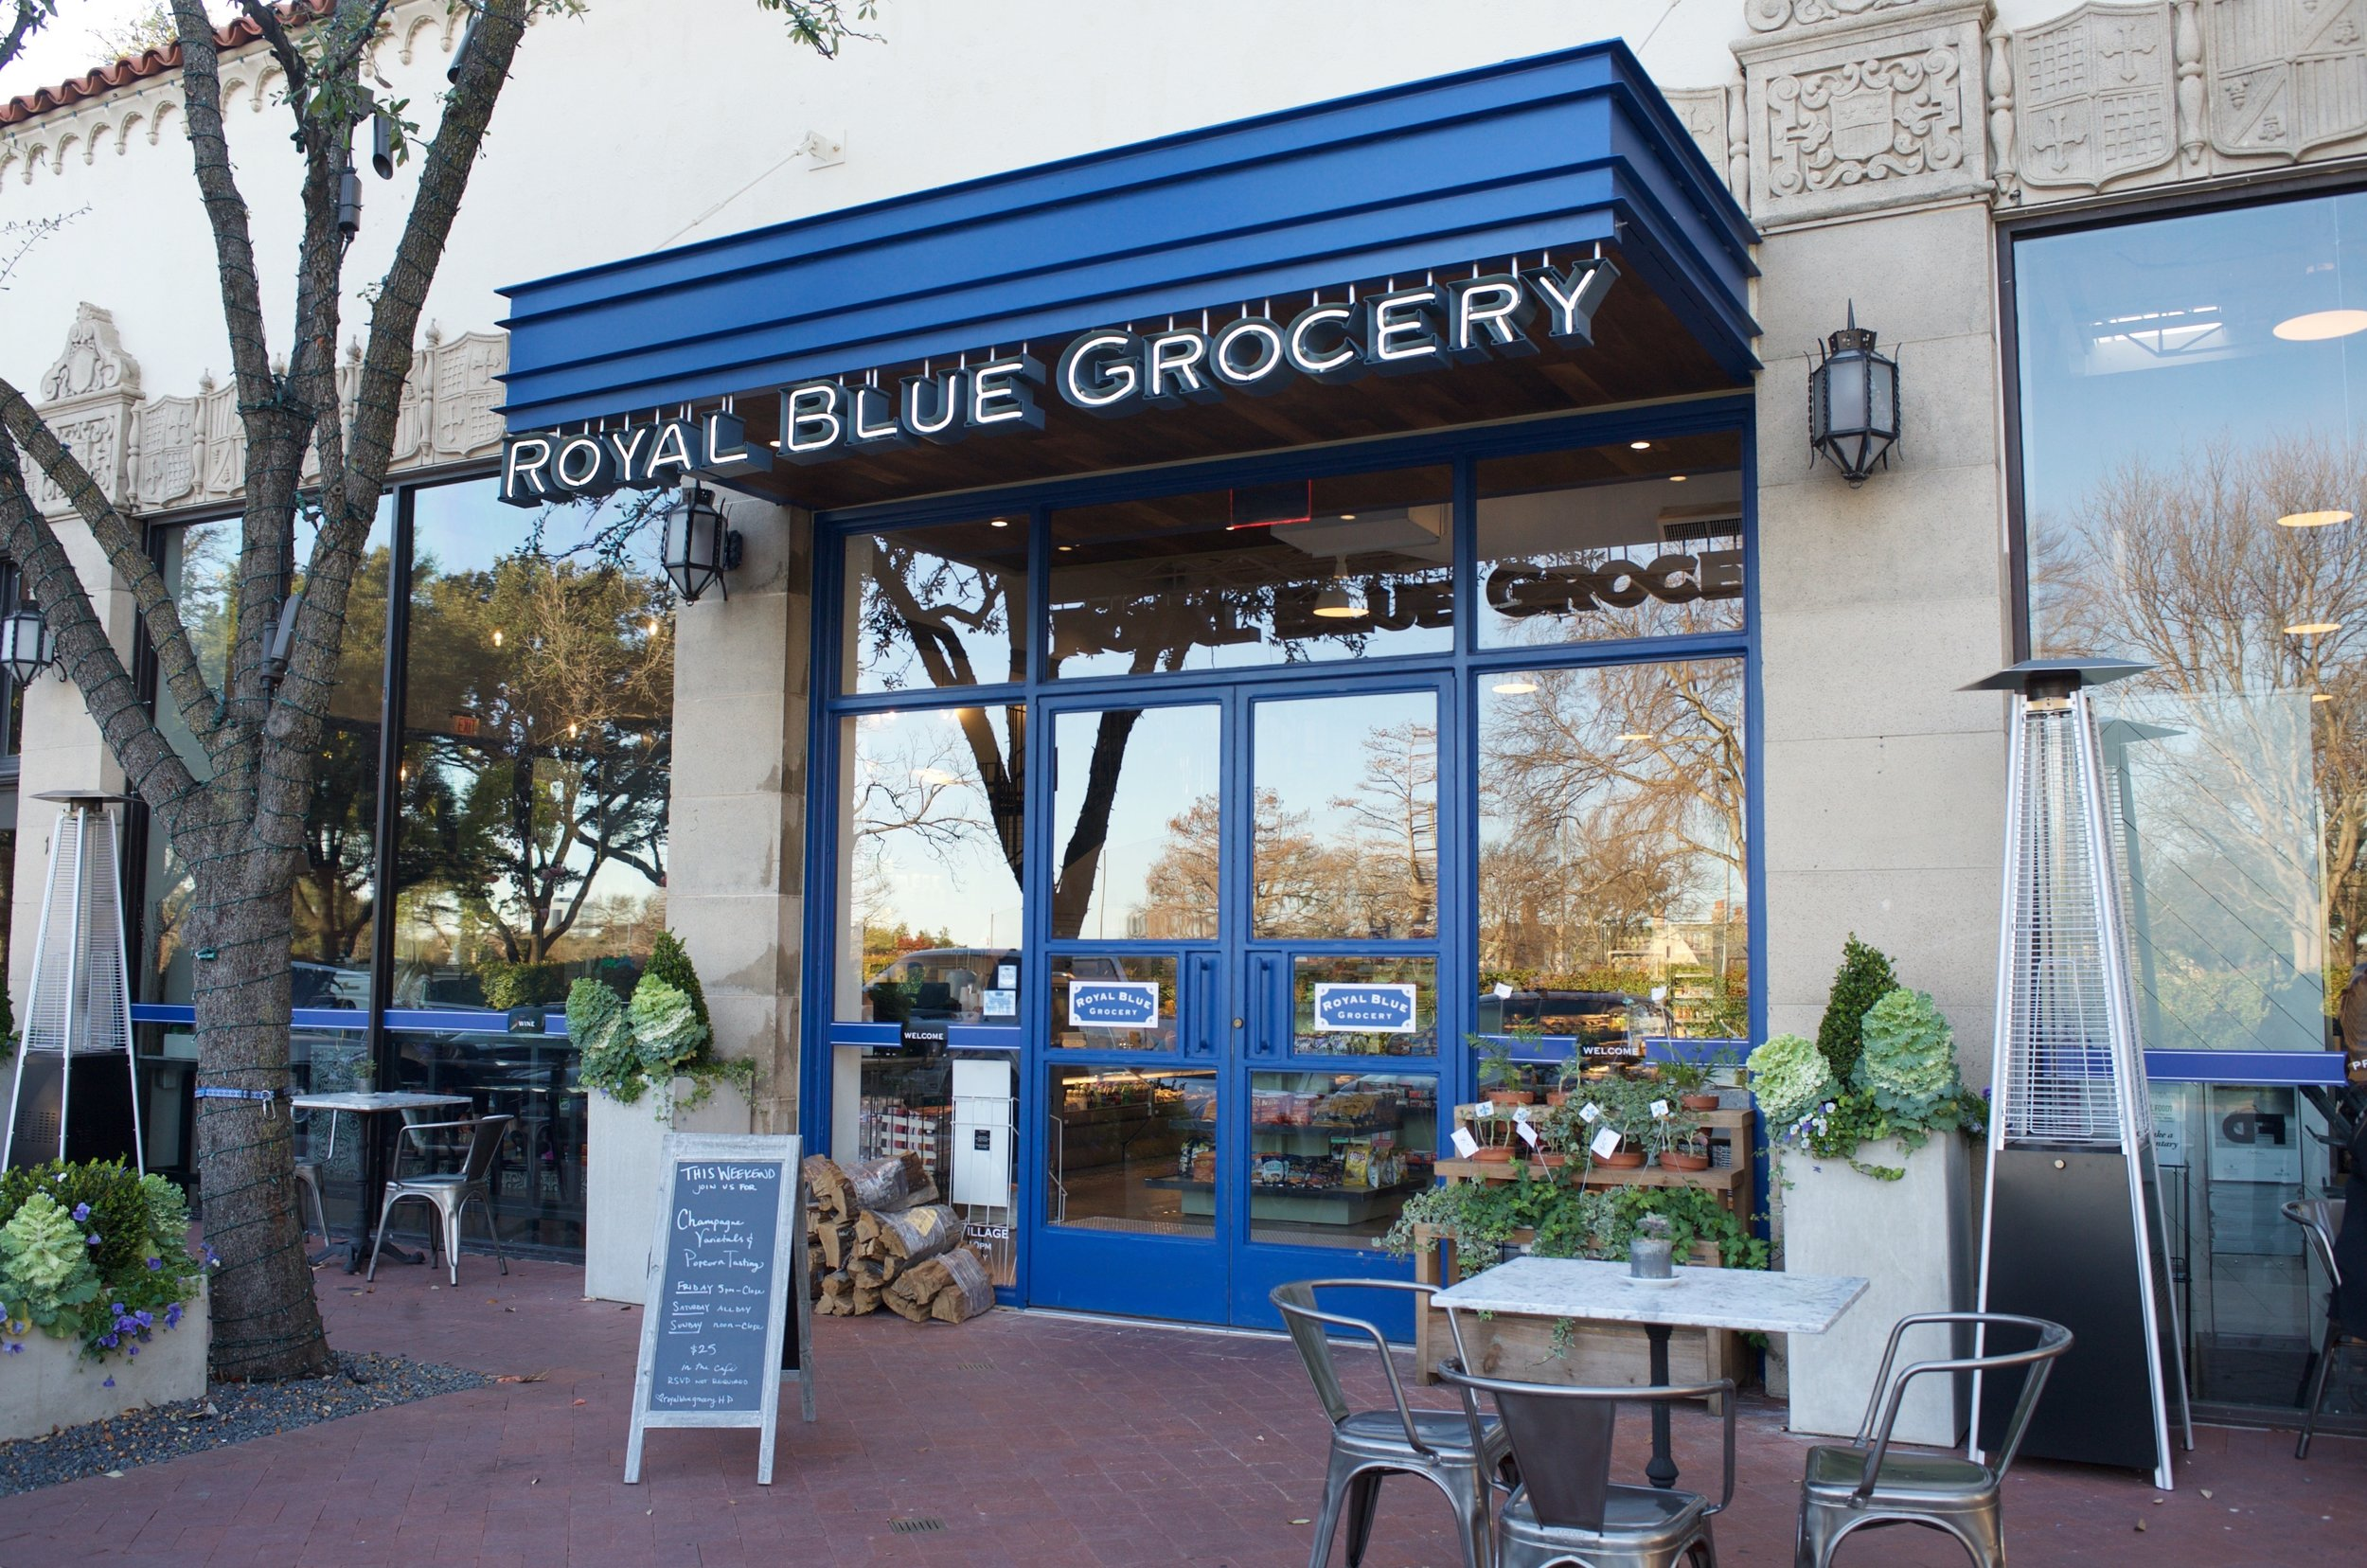 Royal Blue Grocery    Located in the center of Dallas at Highland Park Village, Royal Blue's modern urban grocery is the perfect place to relax and enjoy a snack or meal.    1 Highland Park Village | Dallas, TX | 75205  P: 214.526.9516  Monday-Sunday 7 AM - 10 PM